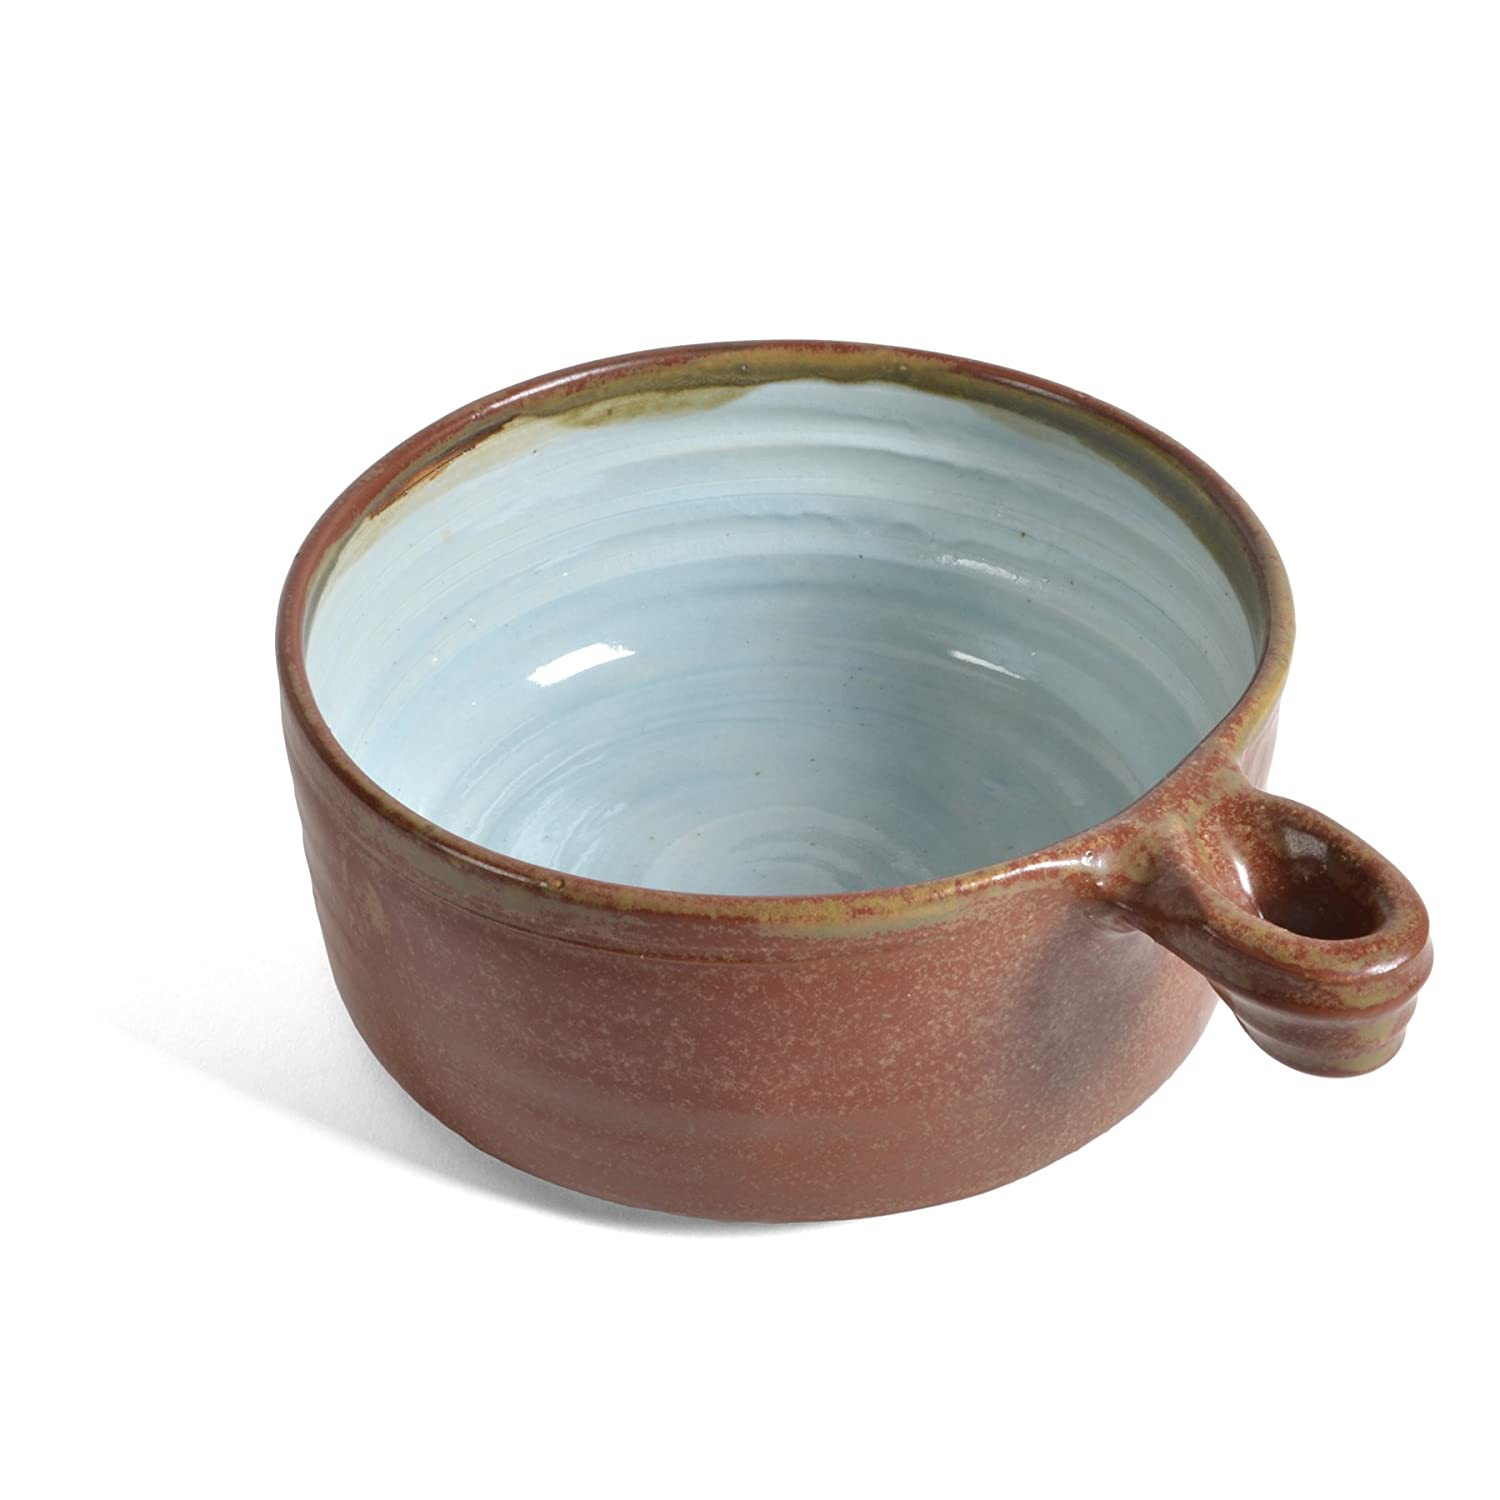 Robins Nest Robin/'s Nest QUESO-RN Holman Pottery Queso Baking Dish with Handle